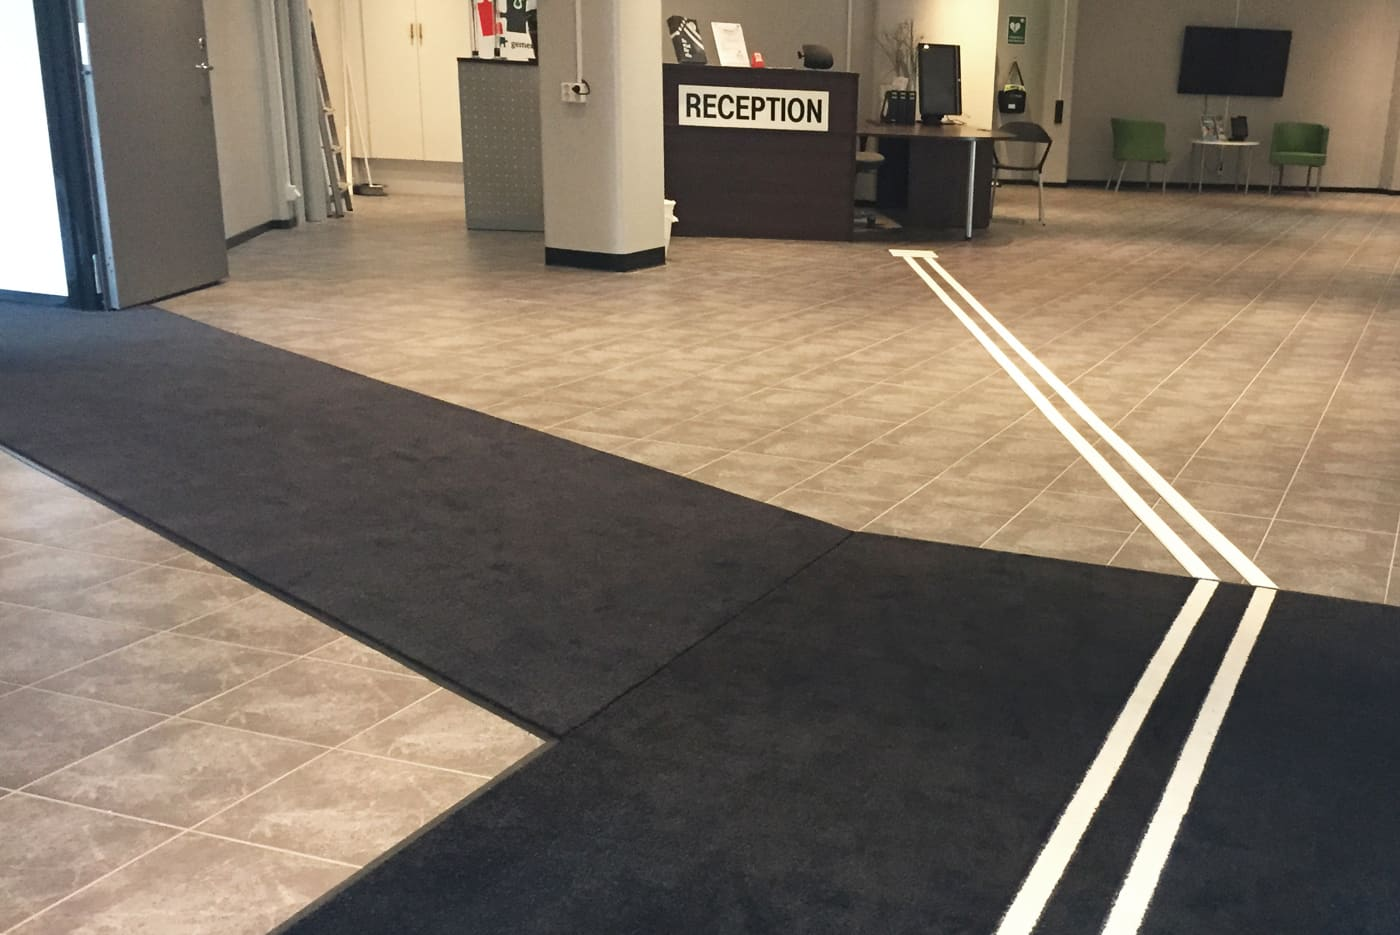 Products tactile flooring tactile flooring entrance matting with visualcoloured guidance systems dailygadgetfo Choice Image